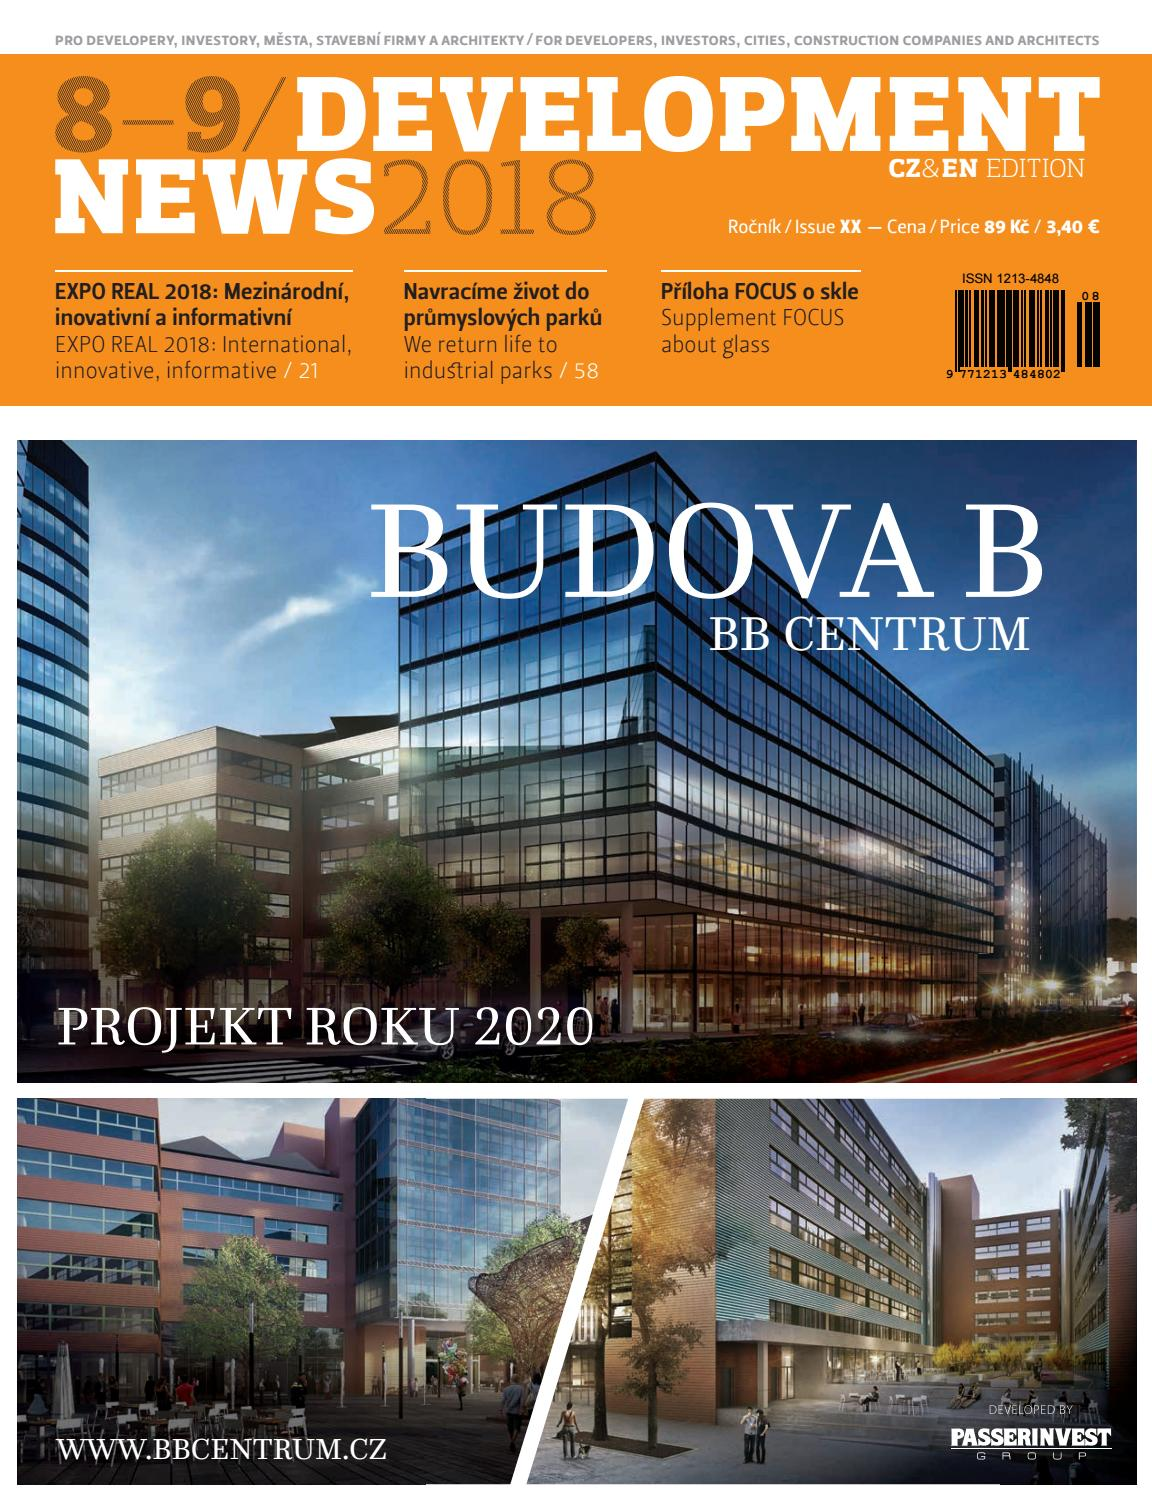 96e111cf38 Development News 8-9 2018 by Wpremium event - issuu